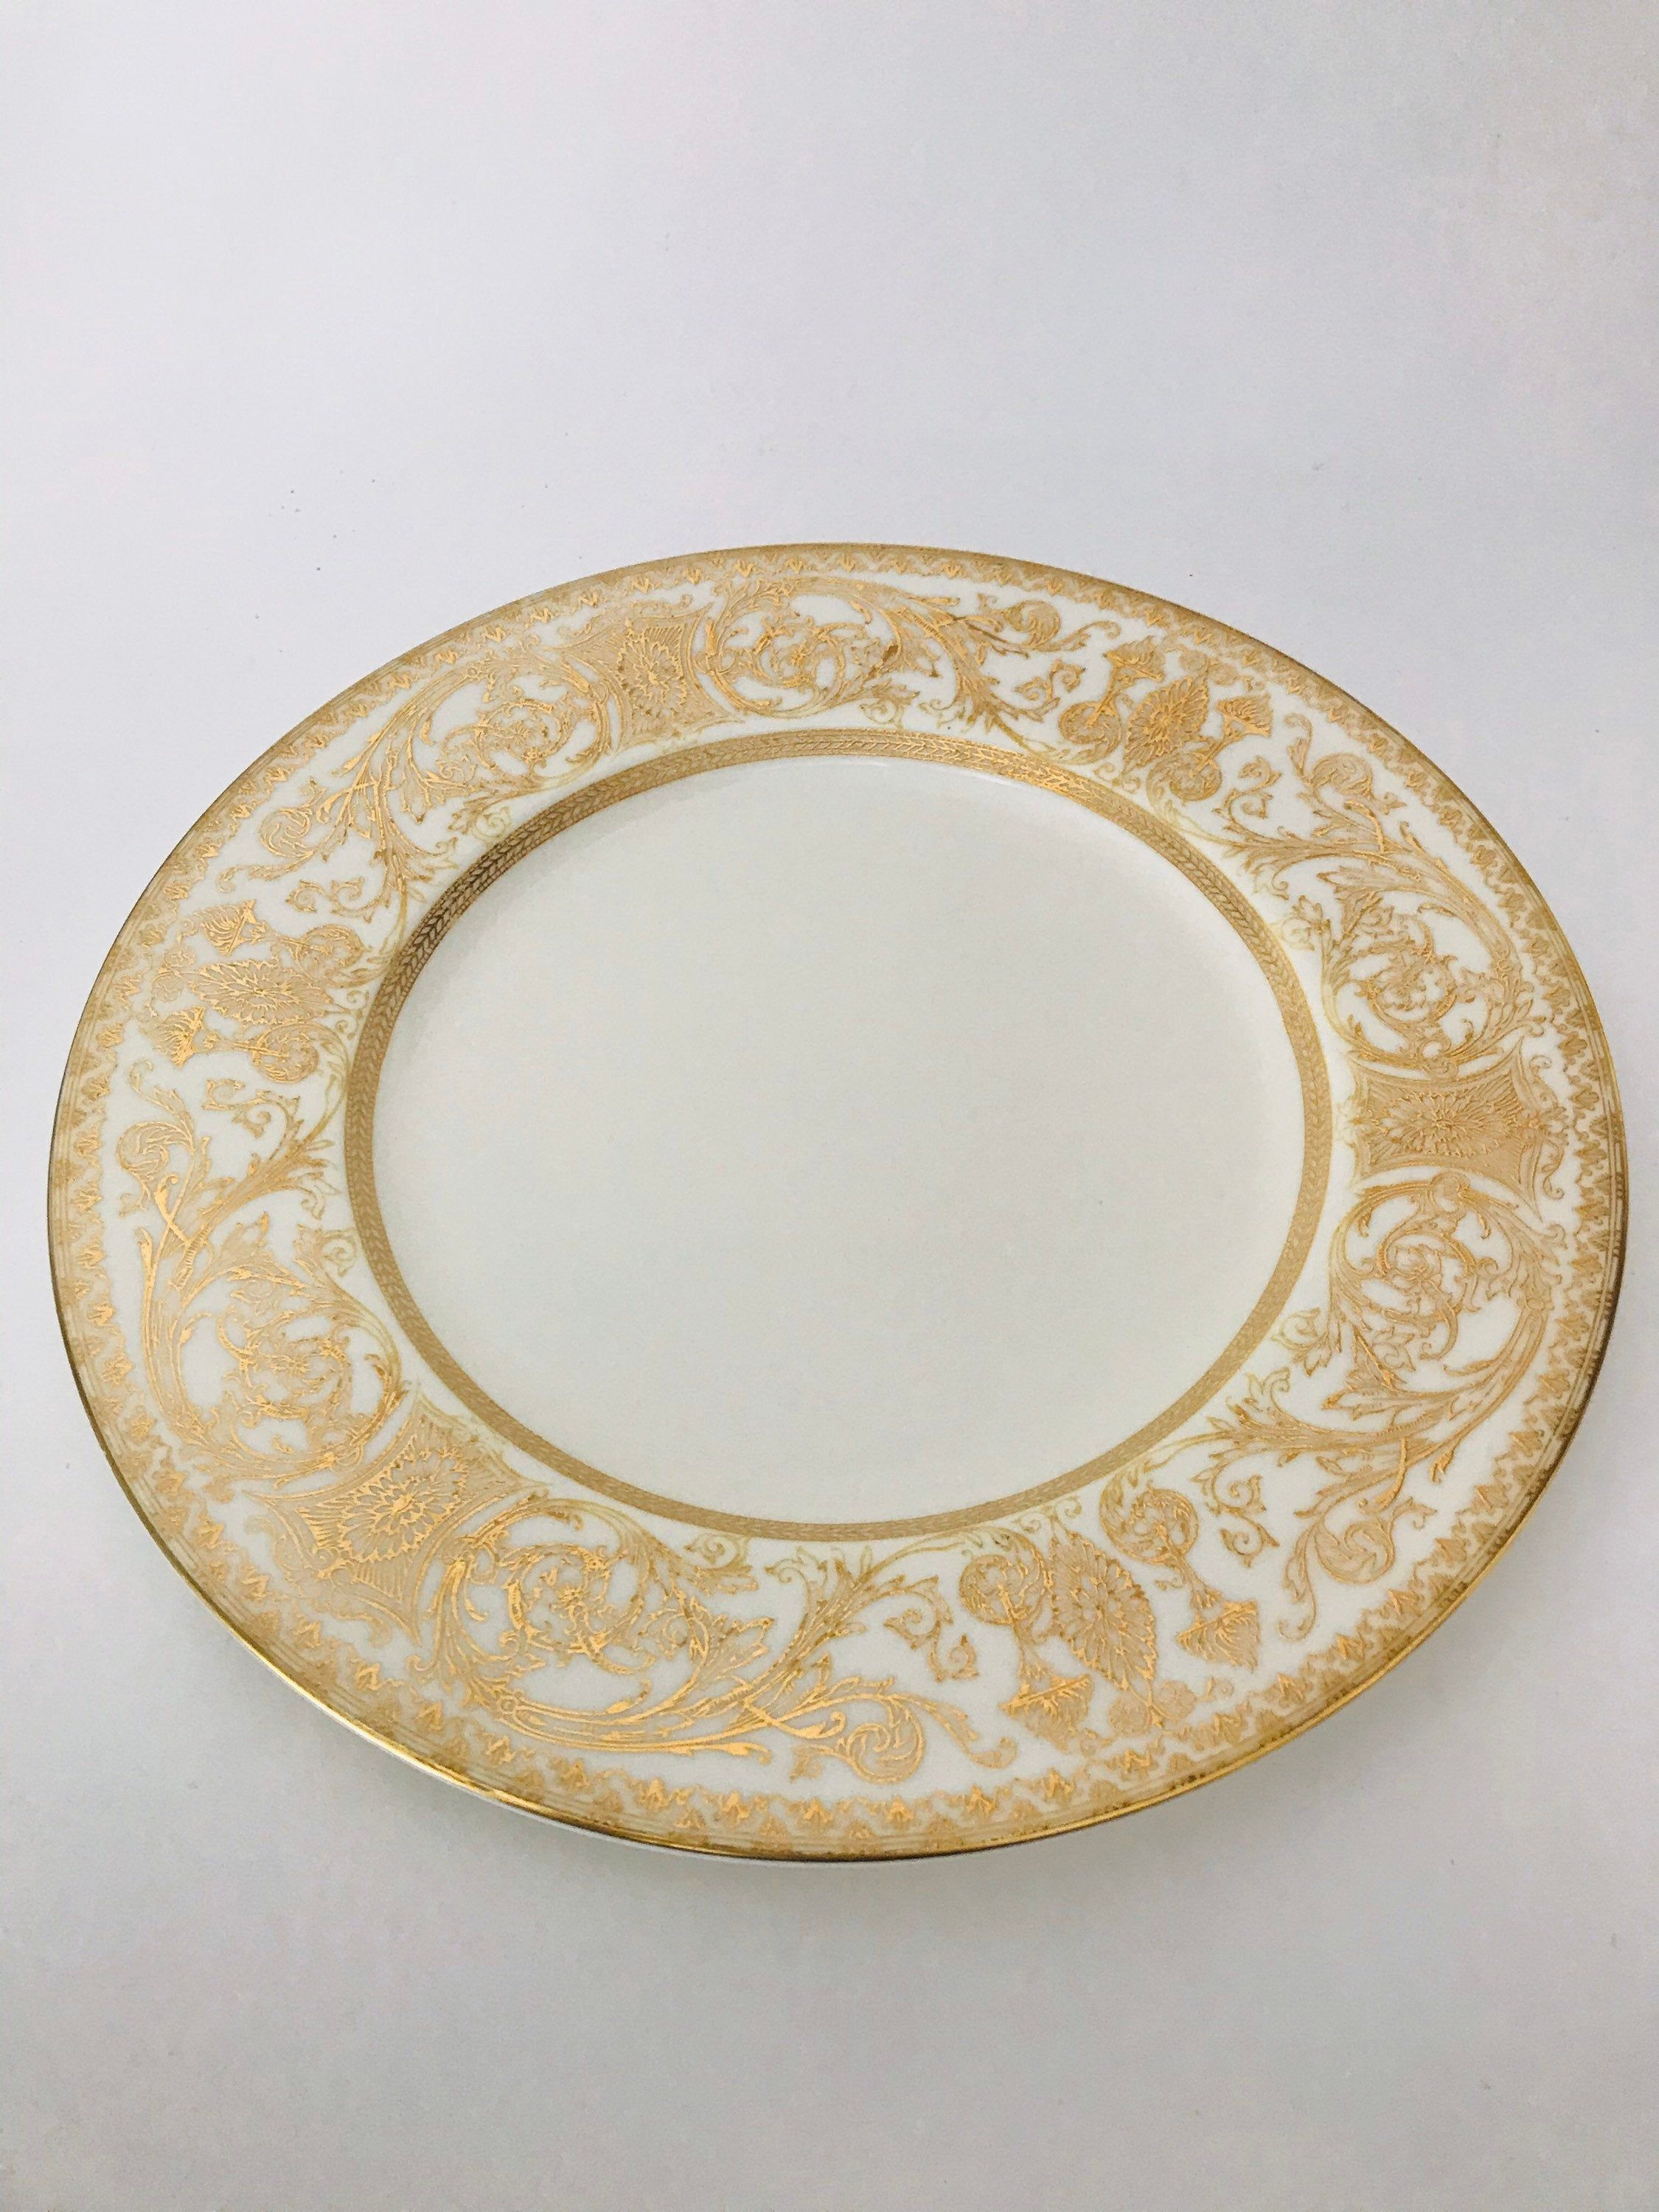 Royal Worcester Embassy Gold And White Dinner Plate 10 3 8 Gold Embossed Gold Filigree 1960s White Dinner Plates Plates Gold Filigree White and gold dinner plates